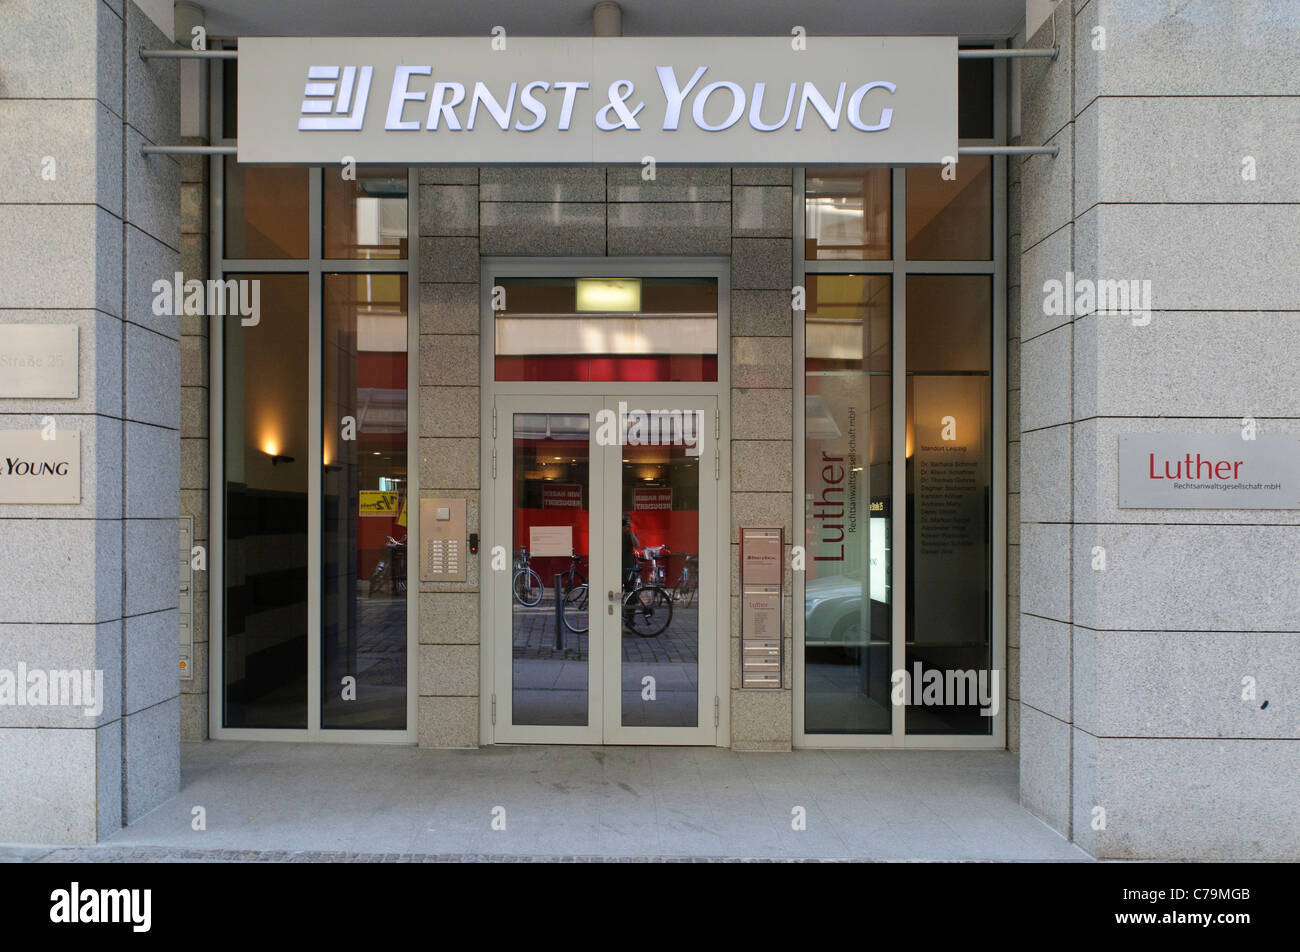 Ernst & Young branch, Leipzig, Saxony, Germany, Europe - Stock Image